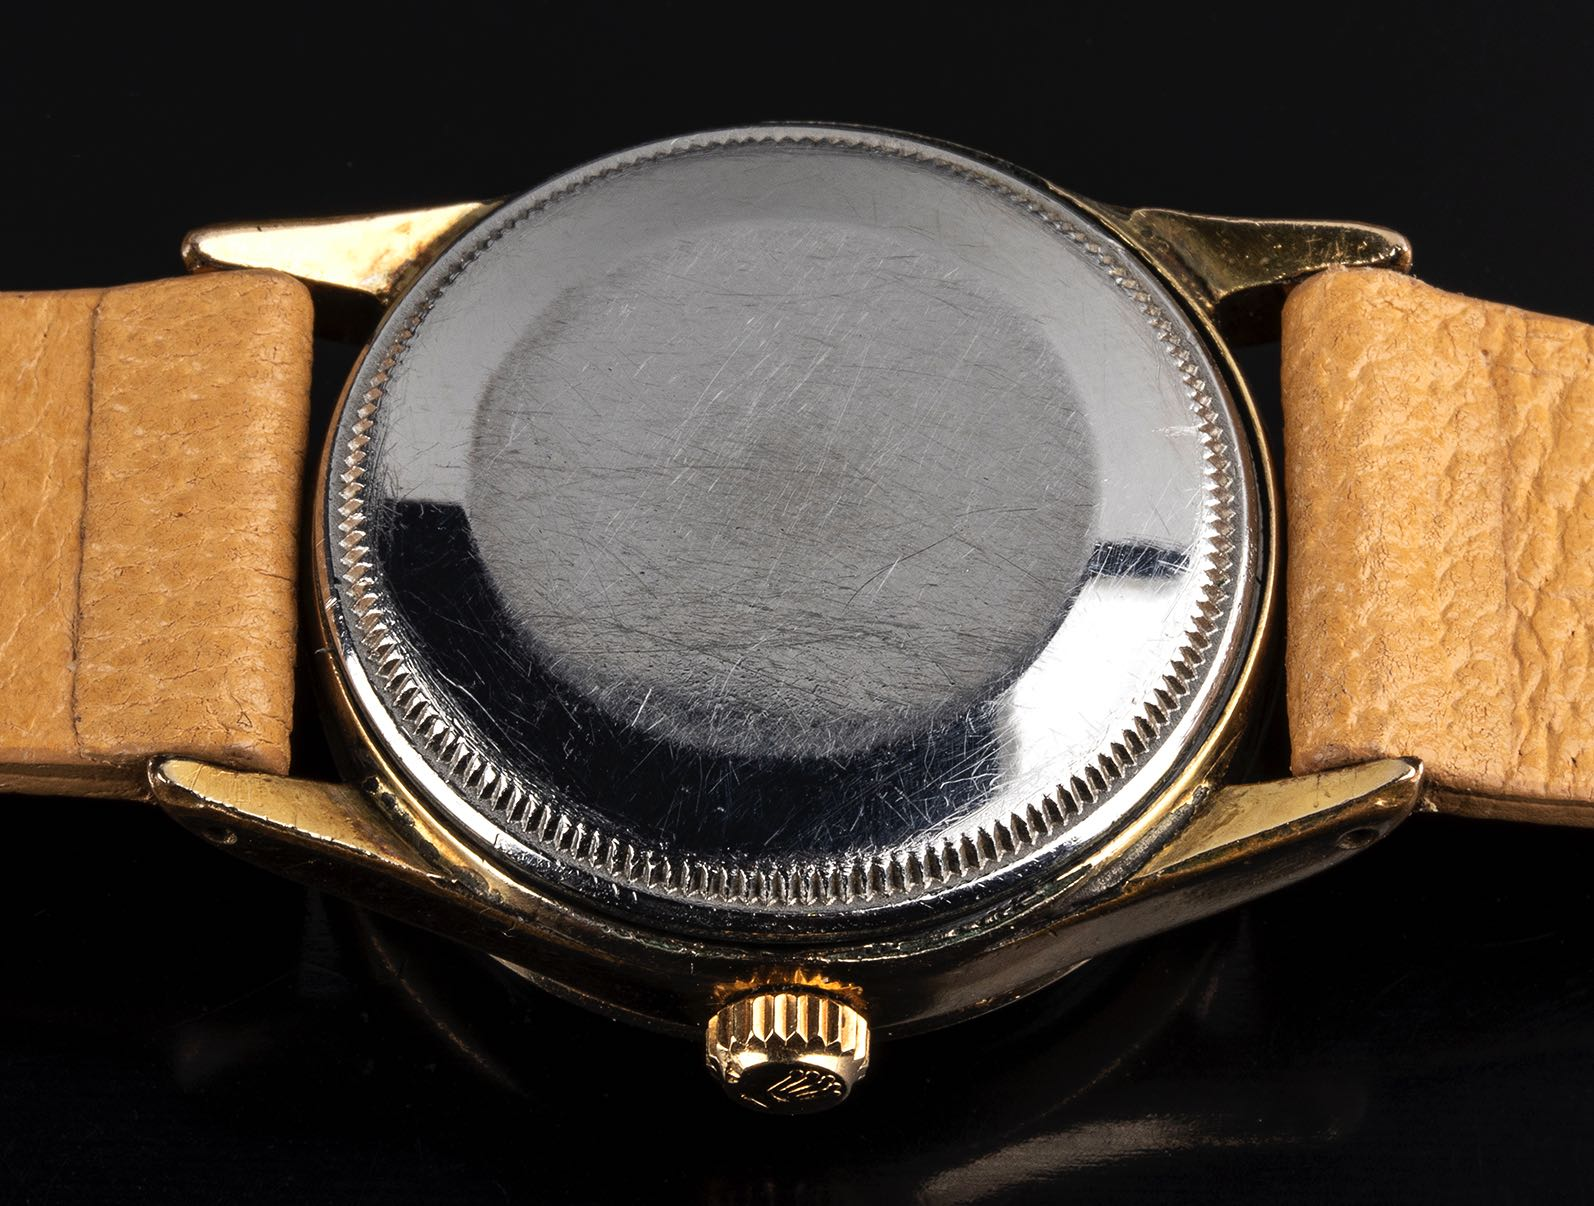 Rolex Explorer guilloche dial ref 5506 Gold filled '1950 - Image 3 of 4